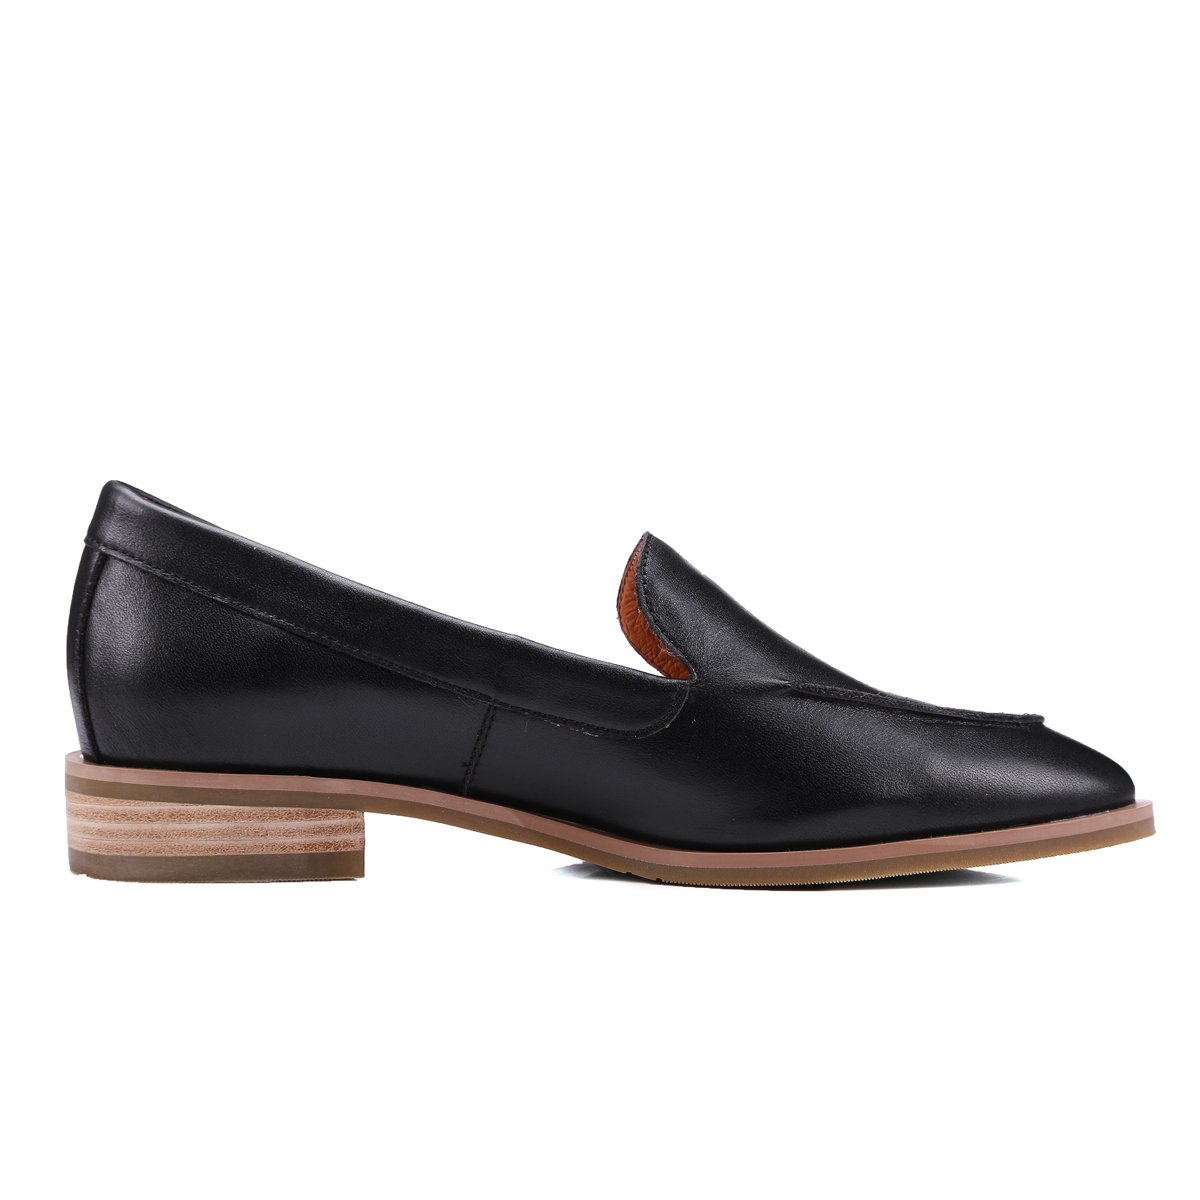 ONEENO Loafers for Women Comfort Casual Slip on Low Heel Cowhide Leather Flat Shoes Black Size 9 US by ONEENO (Image #2)